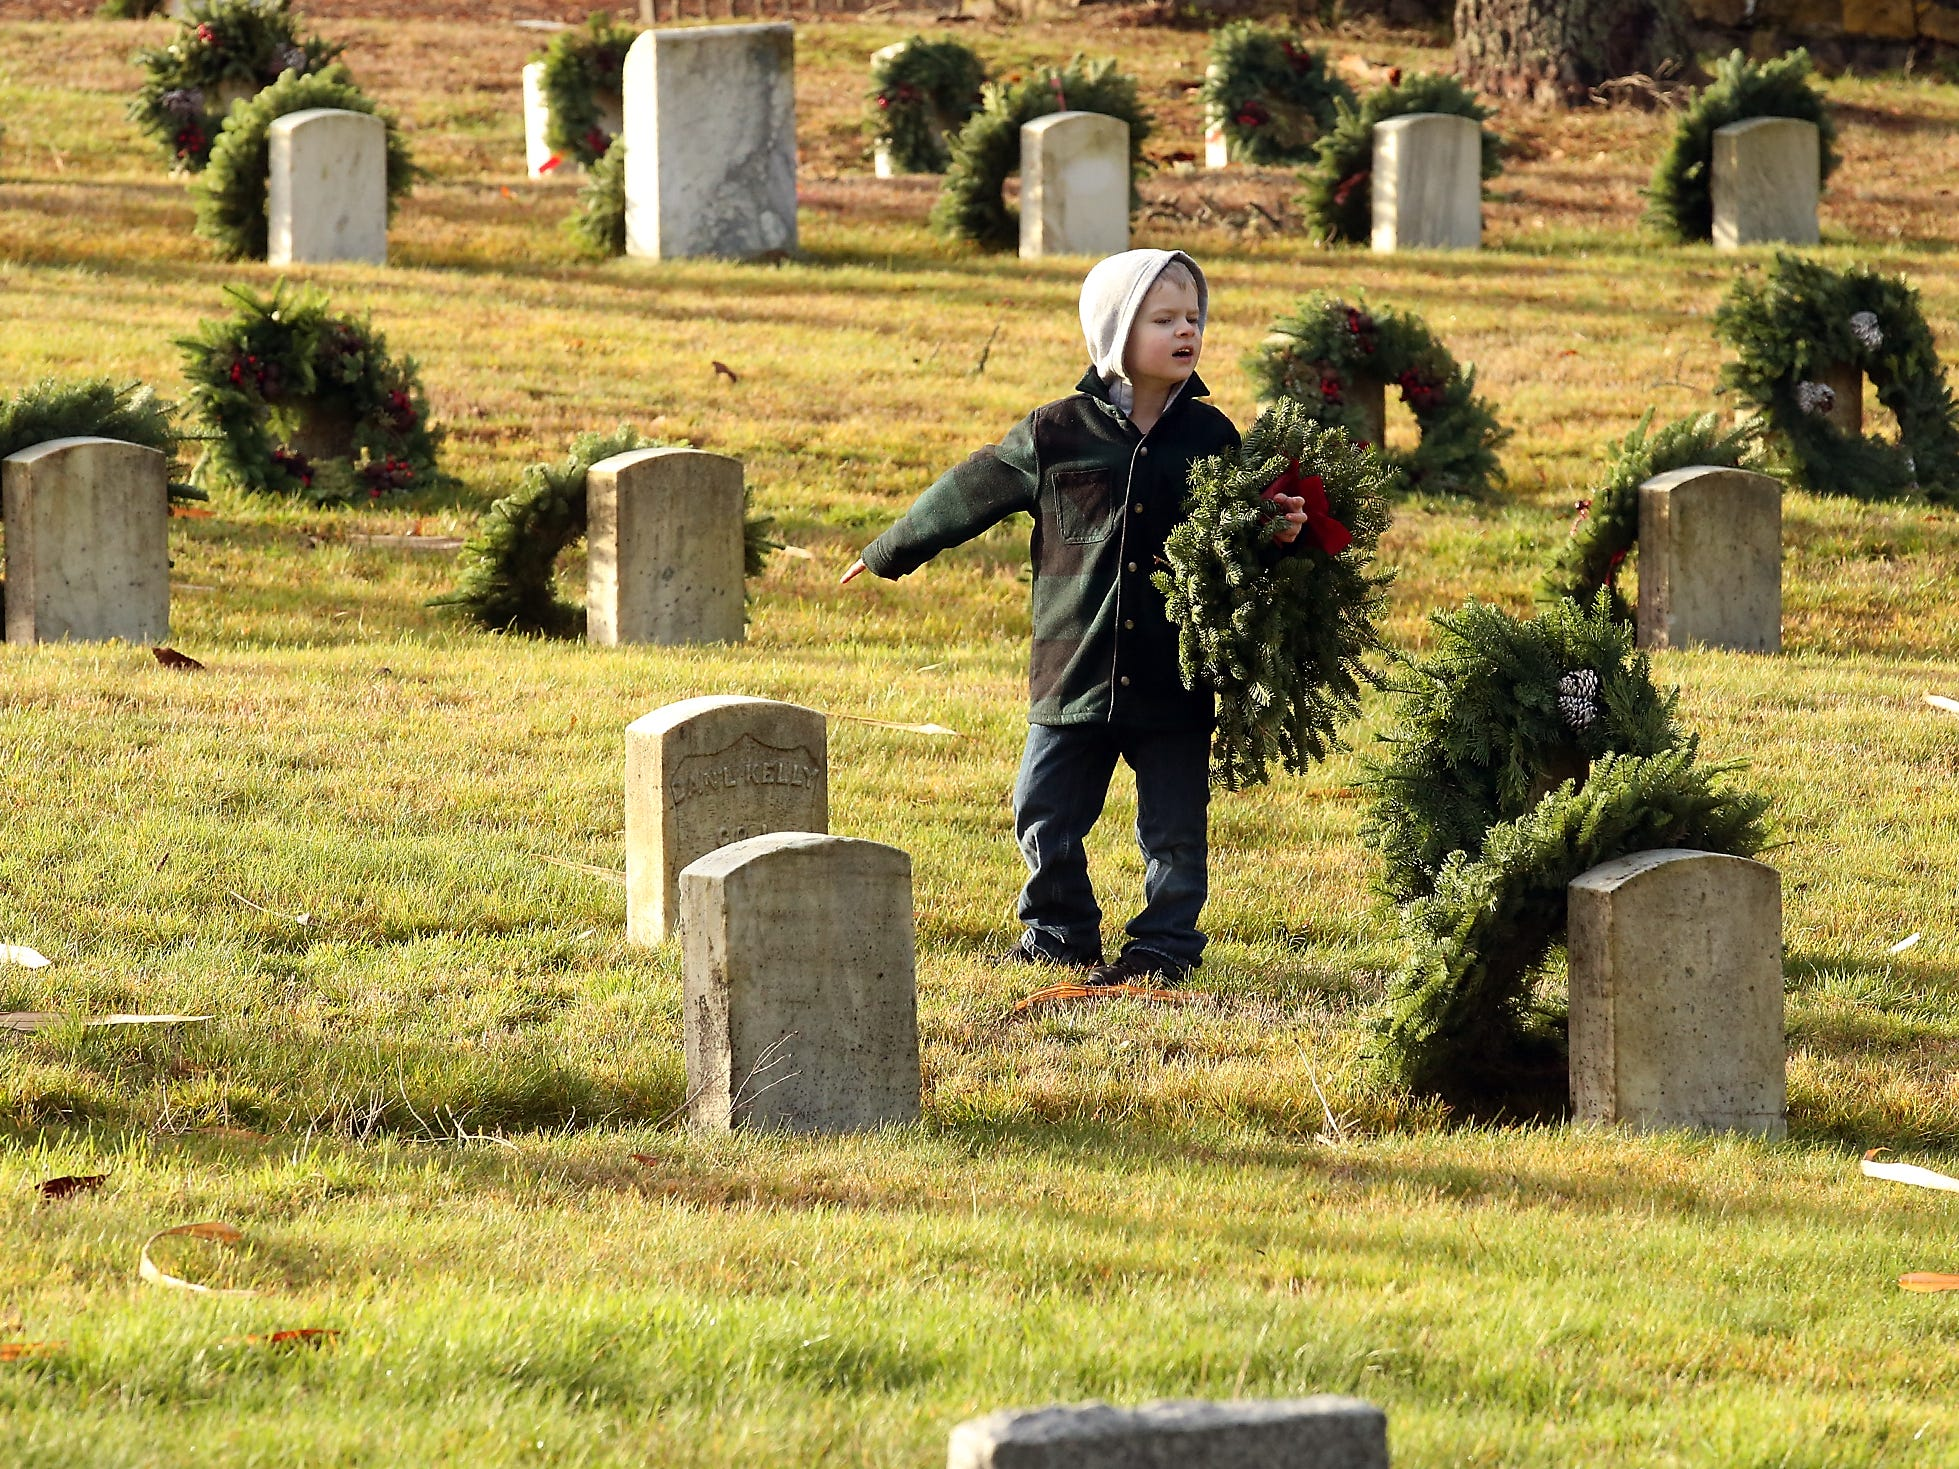 Ethan Rossiter, 6, points to an open headstone as he looks for a place to put his wreath during the Wreaths Across America event at the Washington Veterans Home Cemetery in Port Orchard on Saturday, December 15, 2018.